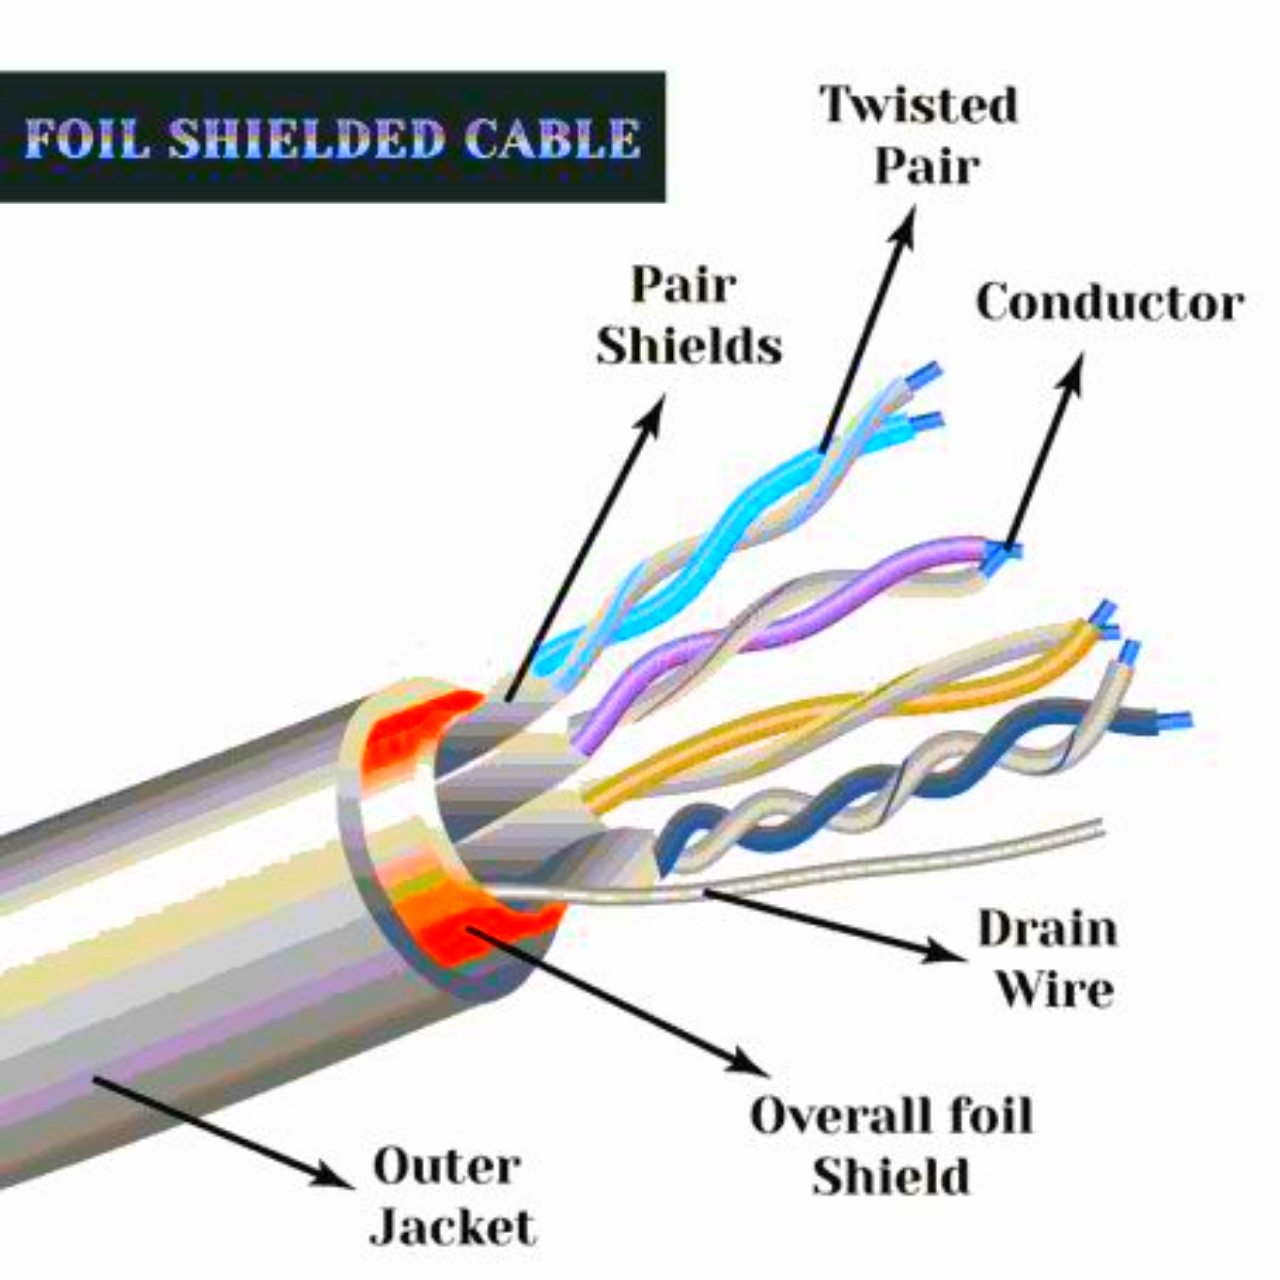 COMPUTER TECH AND LANGUAGES: COMMUNICATION MEDIA,TWISTED PAIR CABLE ...